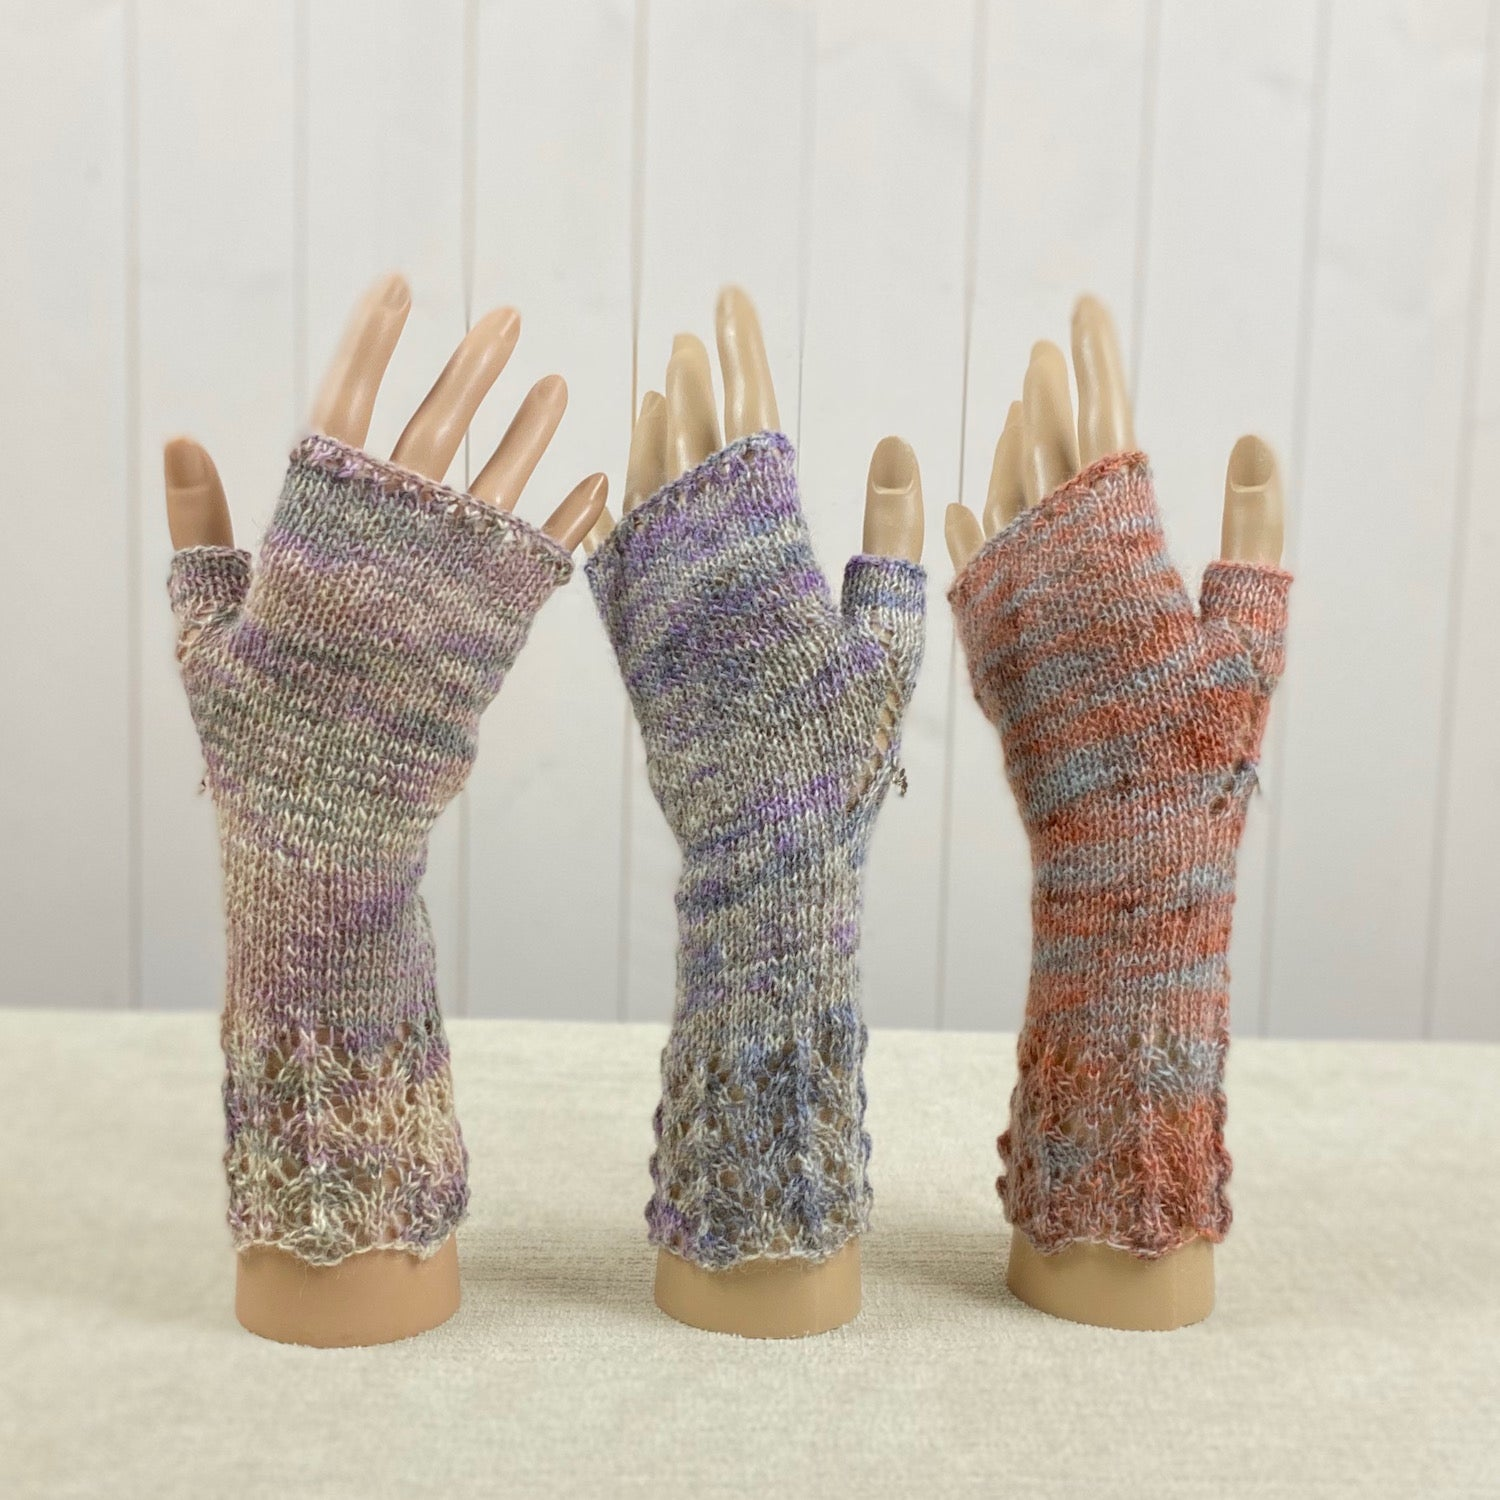 Flowers & Lace Hand Warmers Knitting Kit